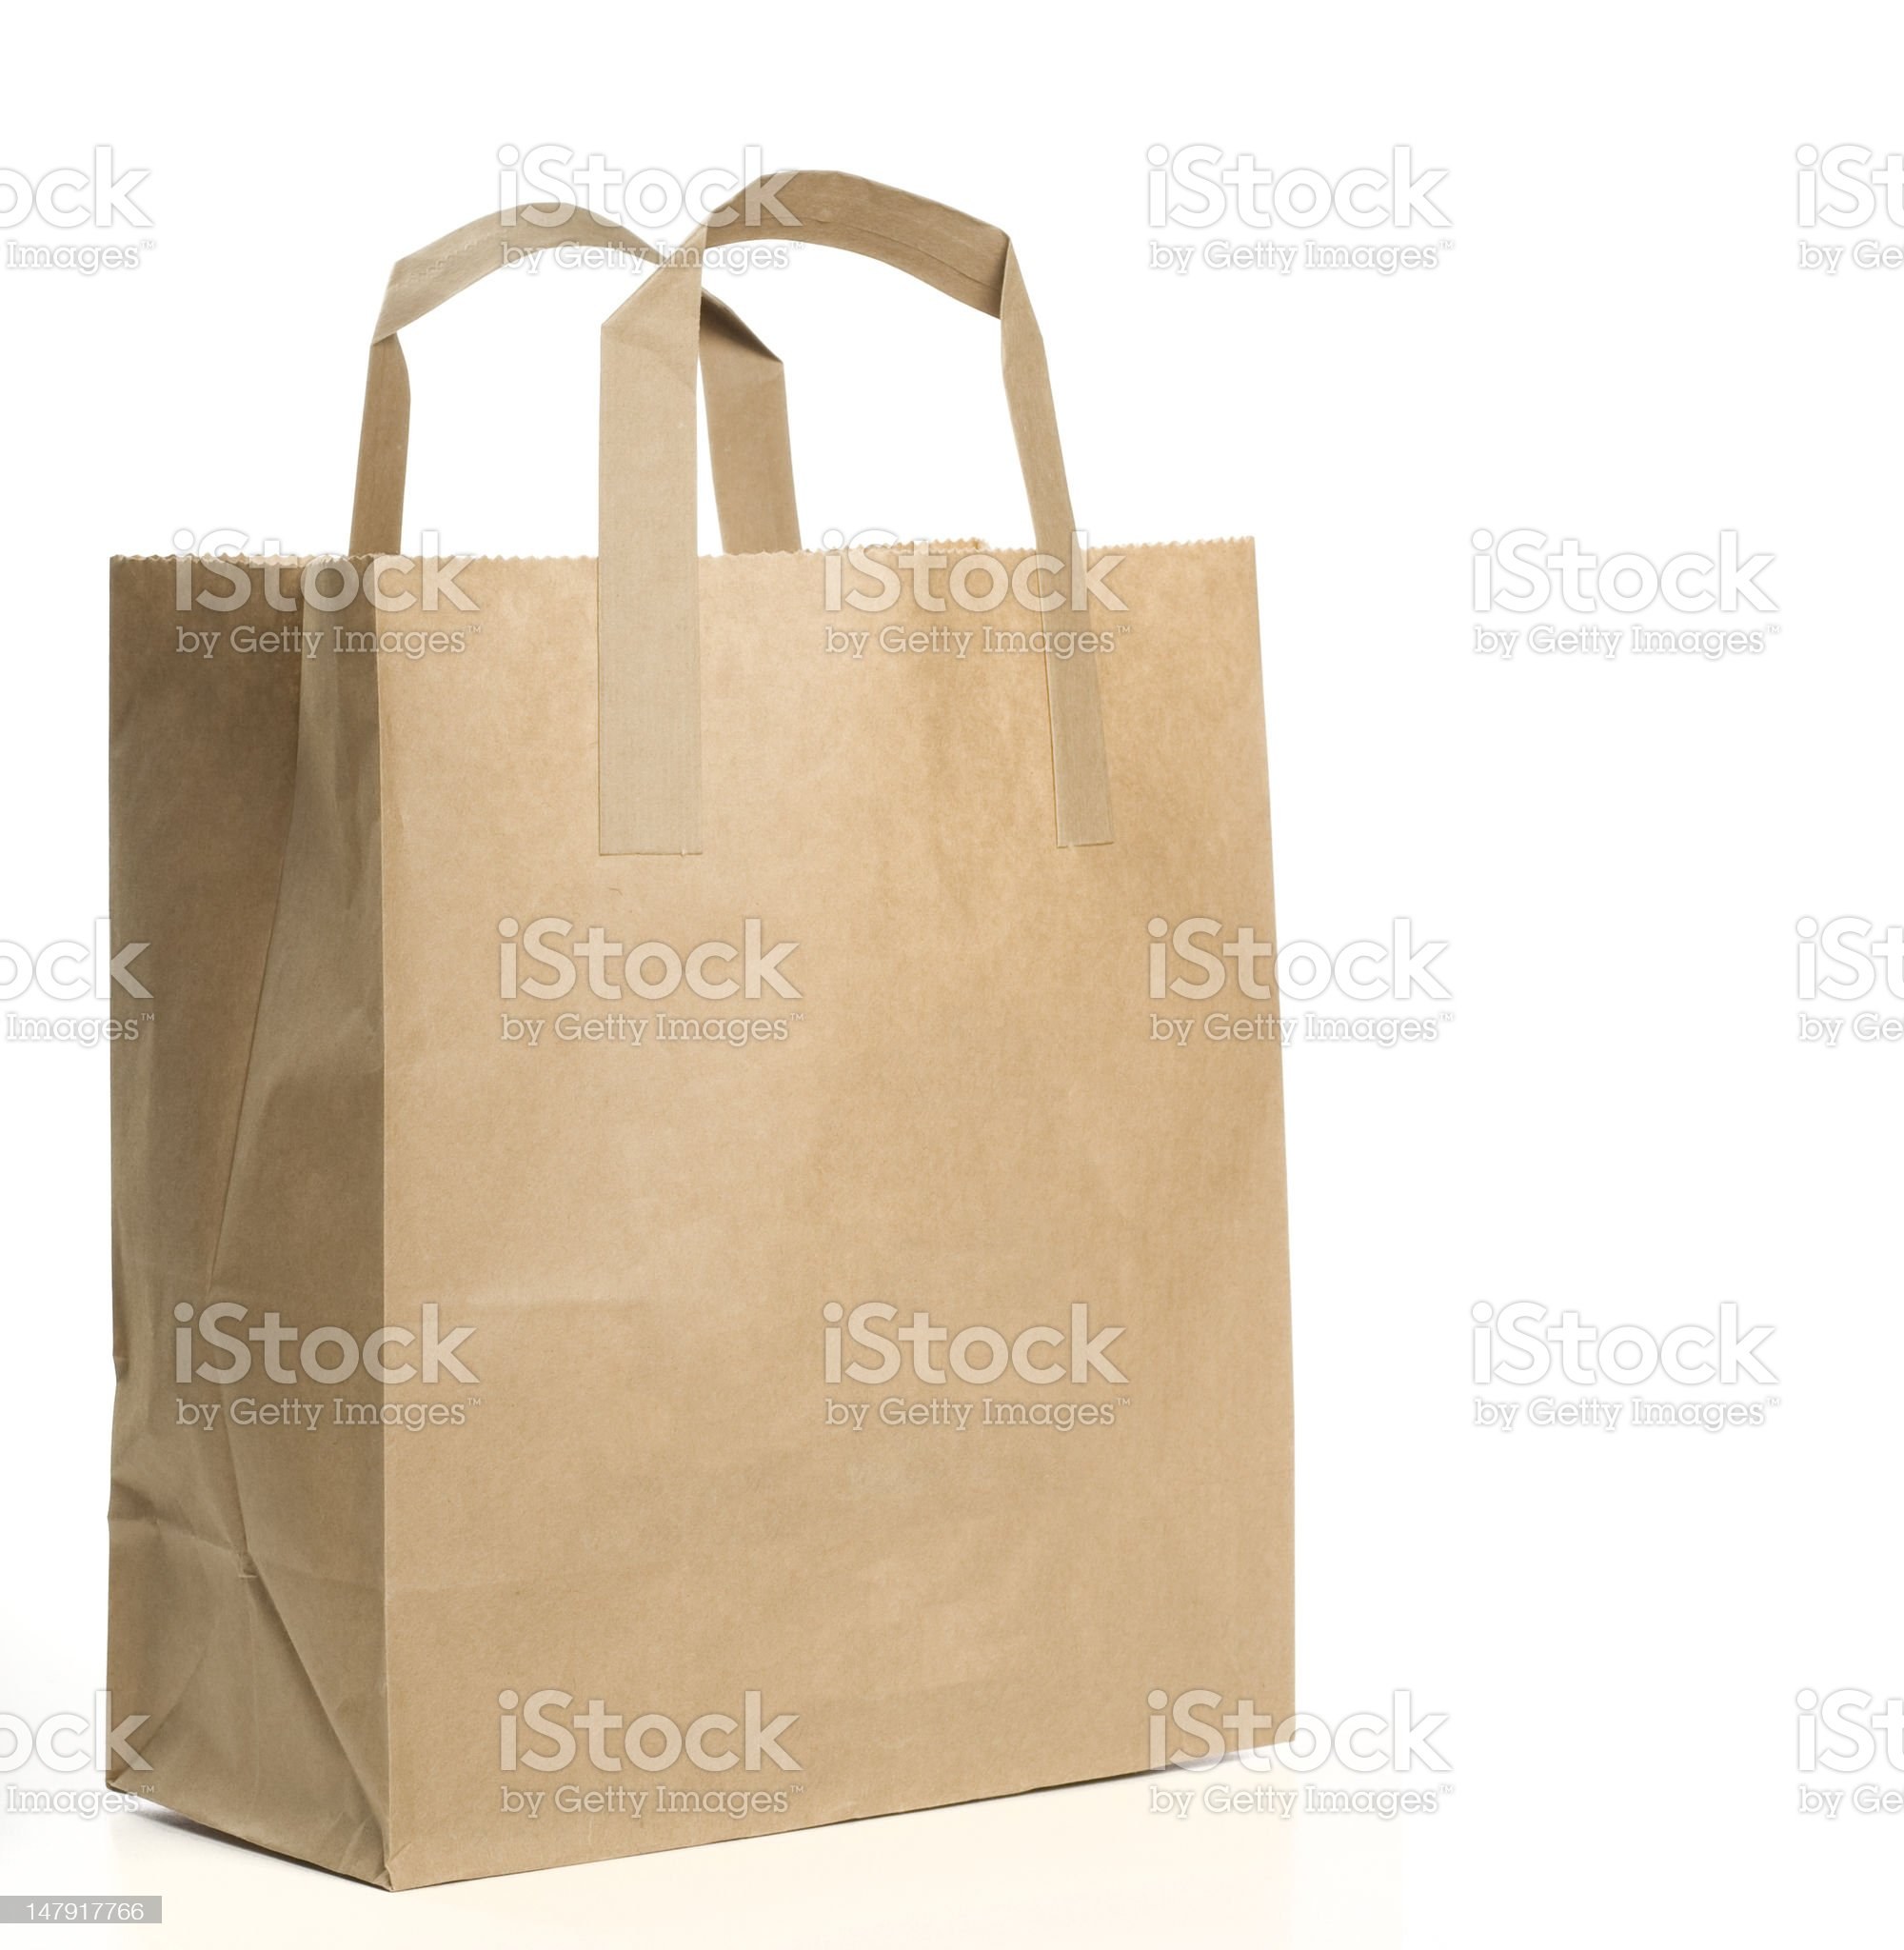 Paper Shopping Bag on white background royalty-free stock photo